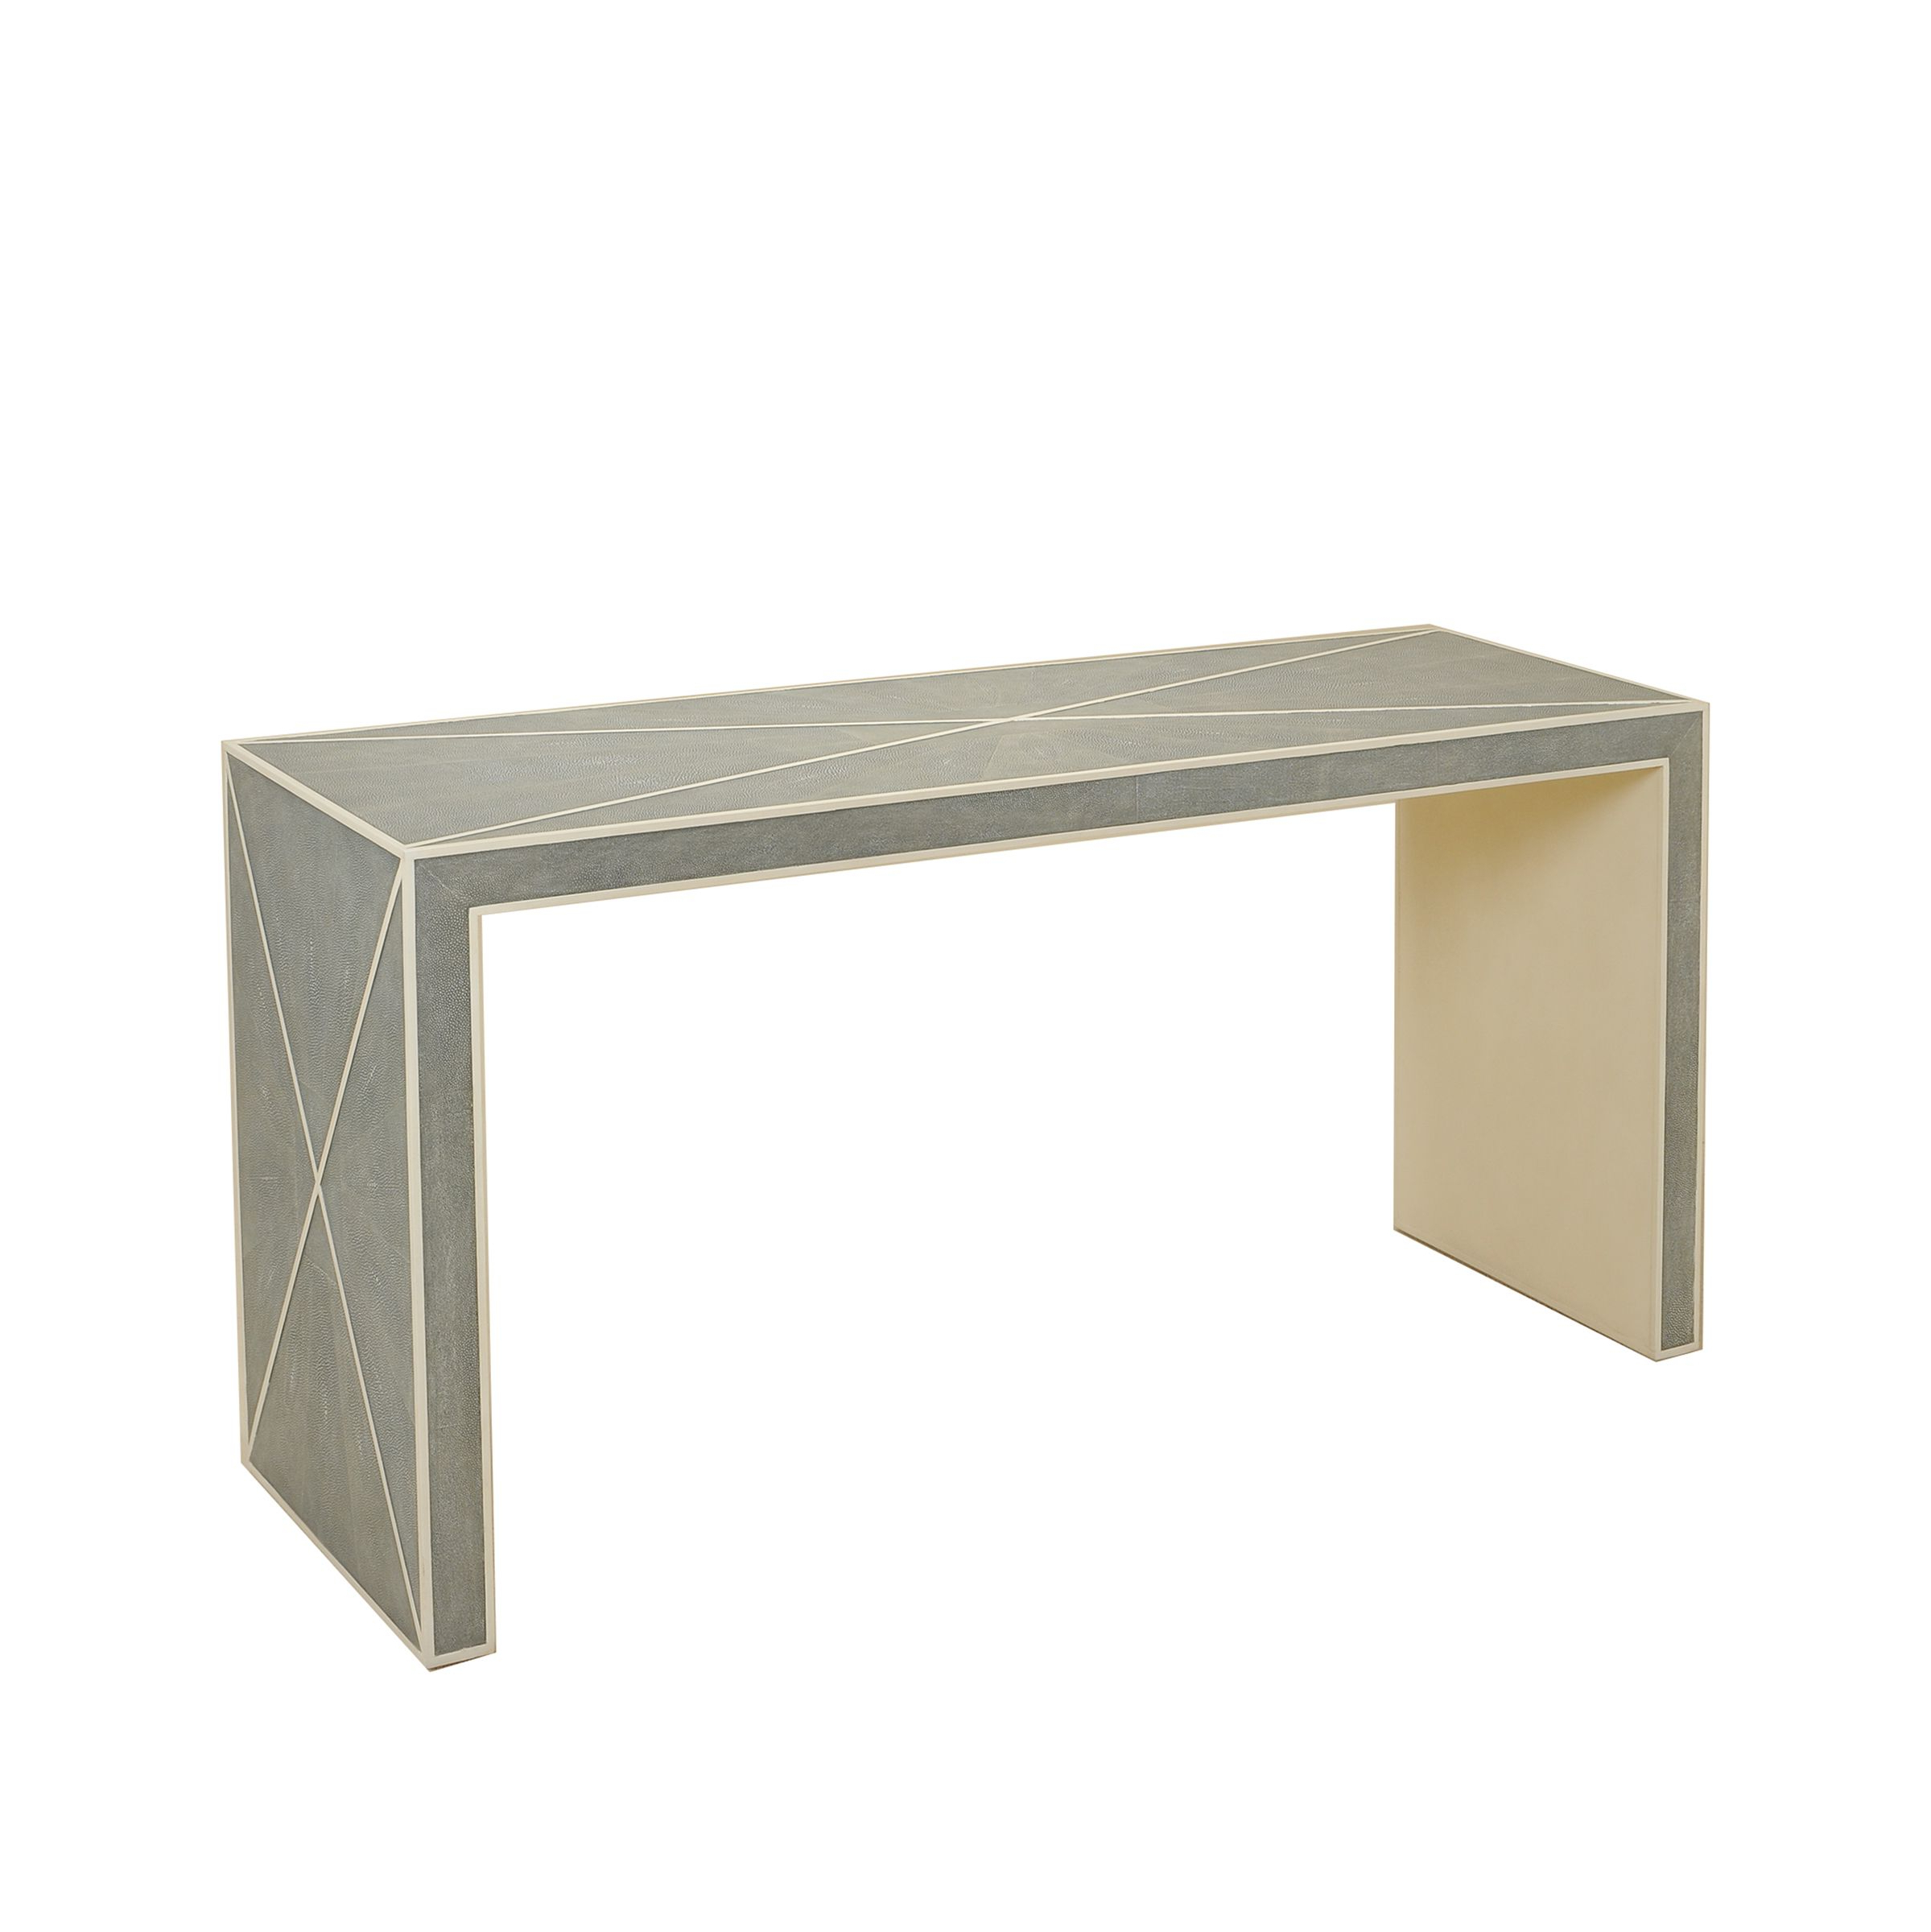 Pinerin Forrey On Phillip | Pinterest | Console Table, Furniture Throughout Phillip Brass Console Tables (View 11 of 20)